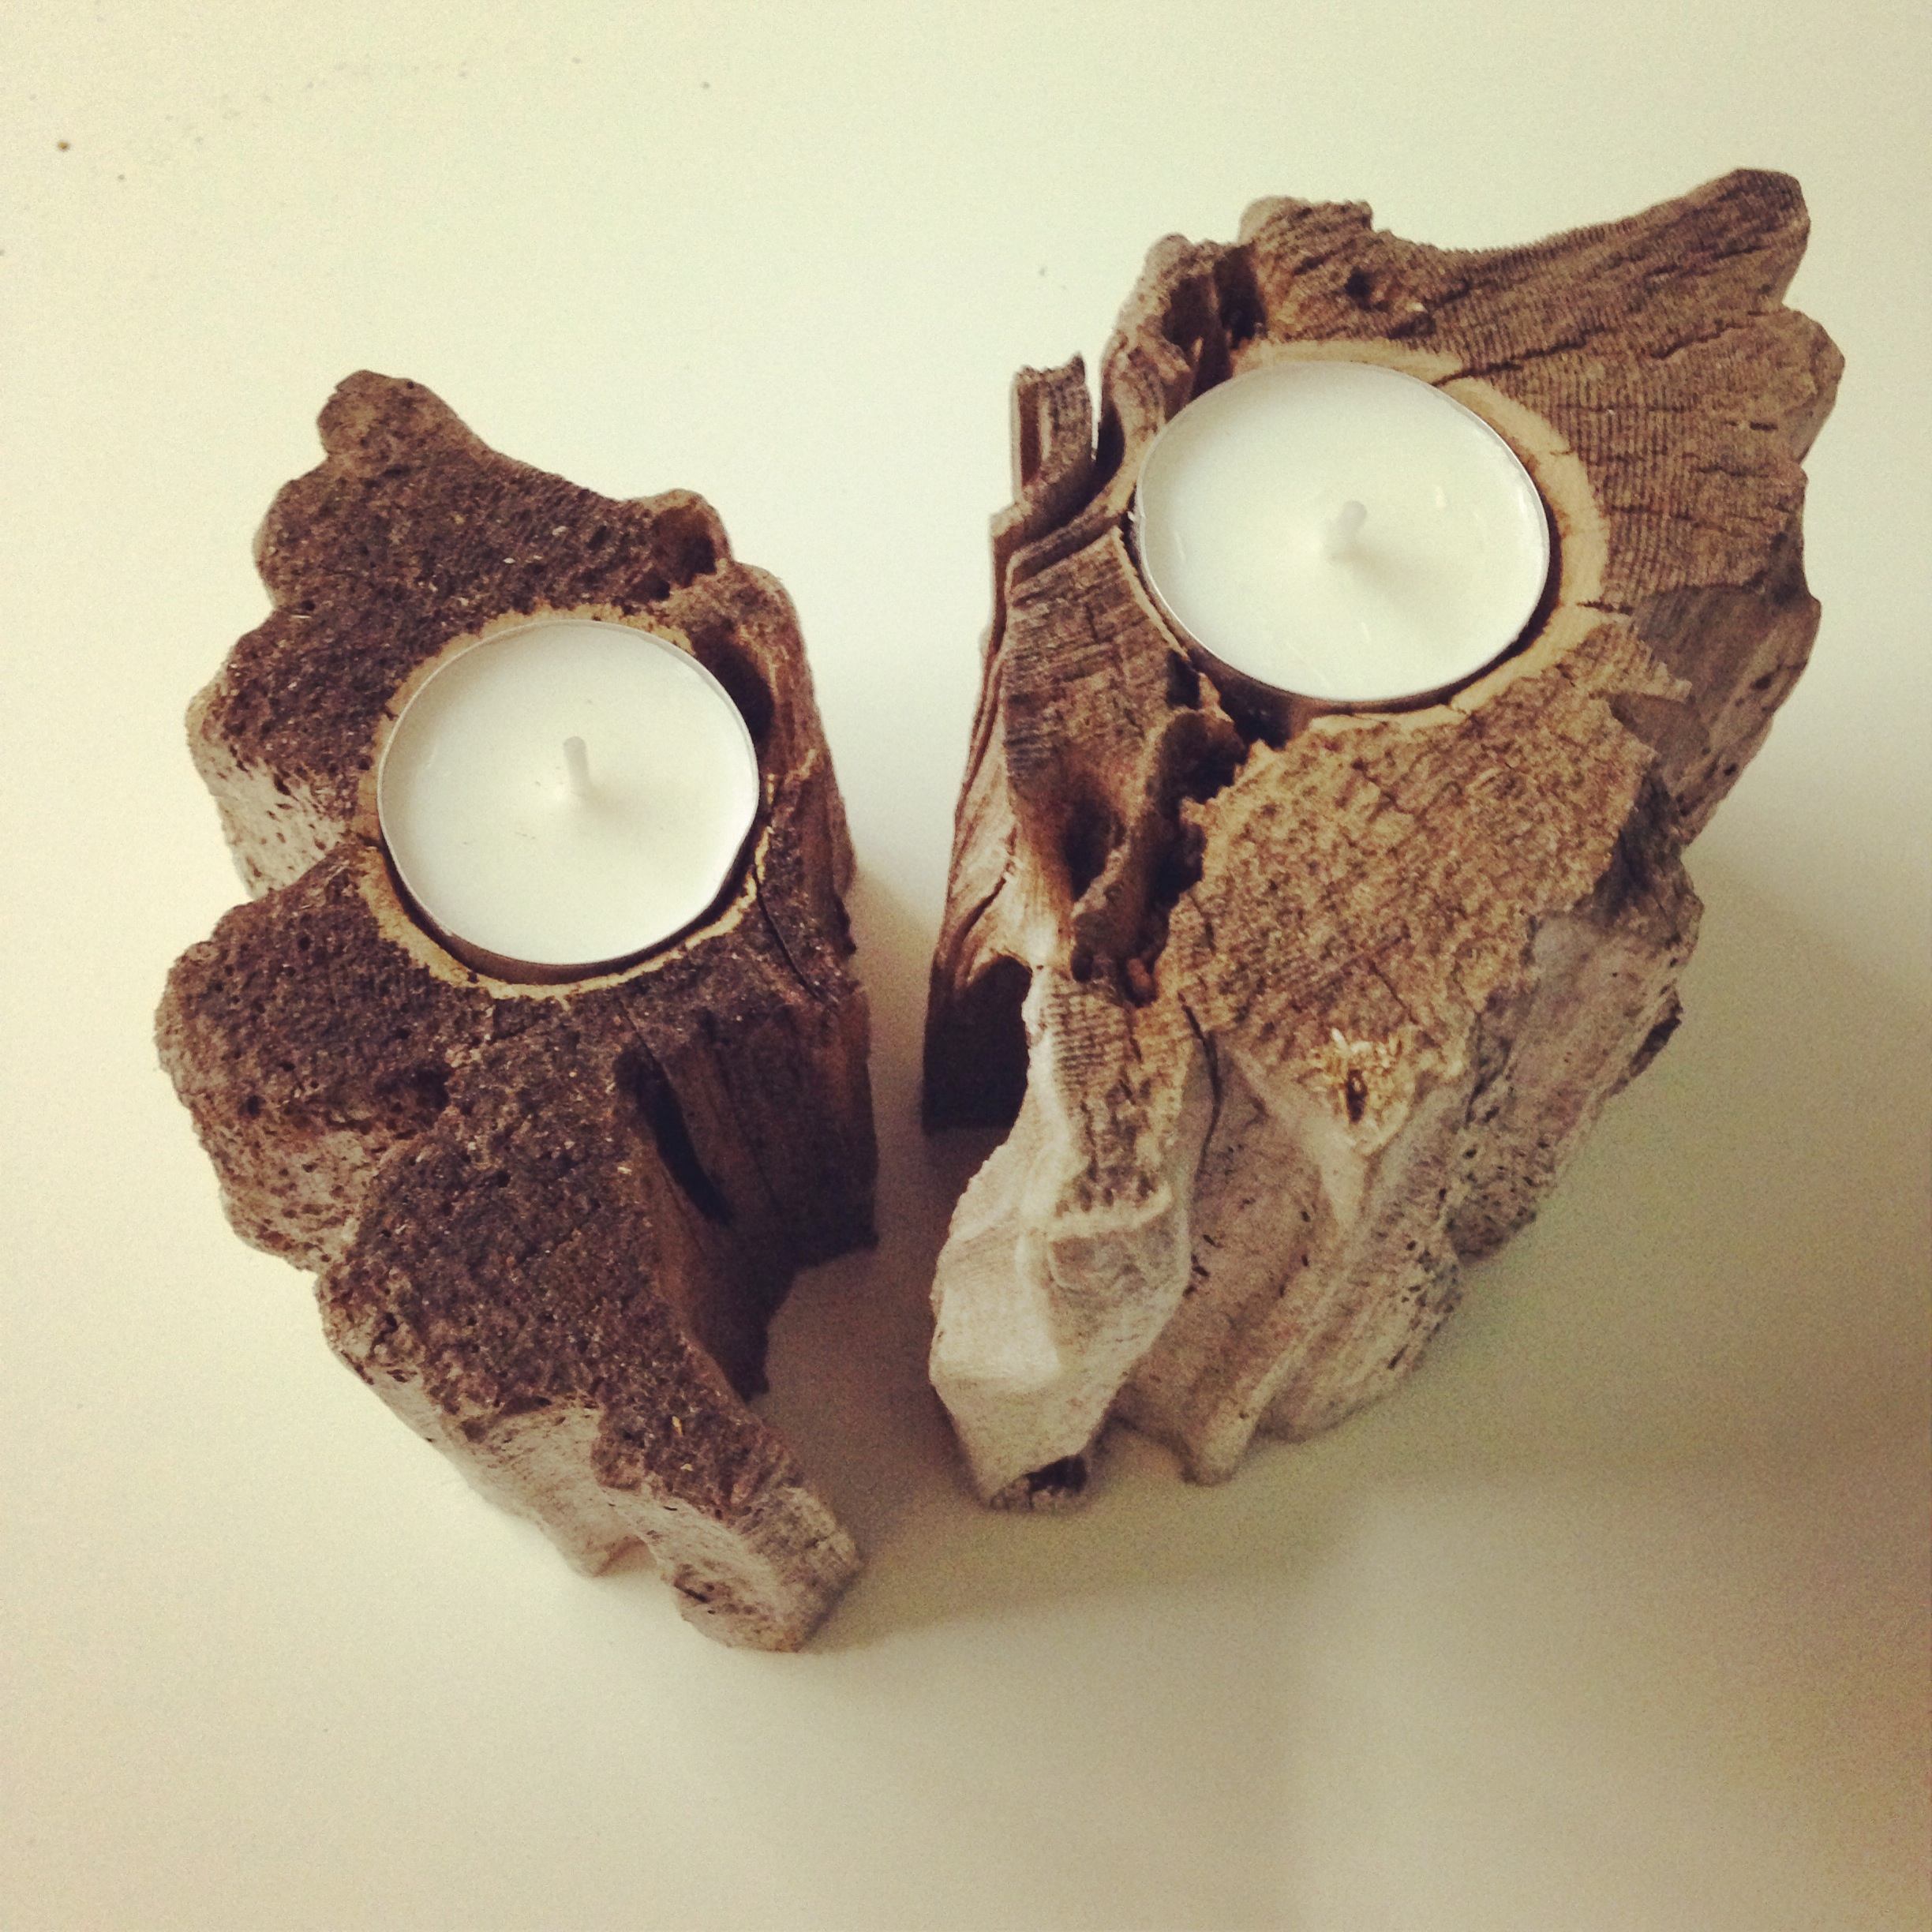 Driftwood Tealight Holders